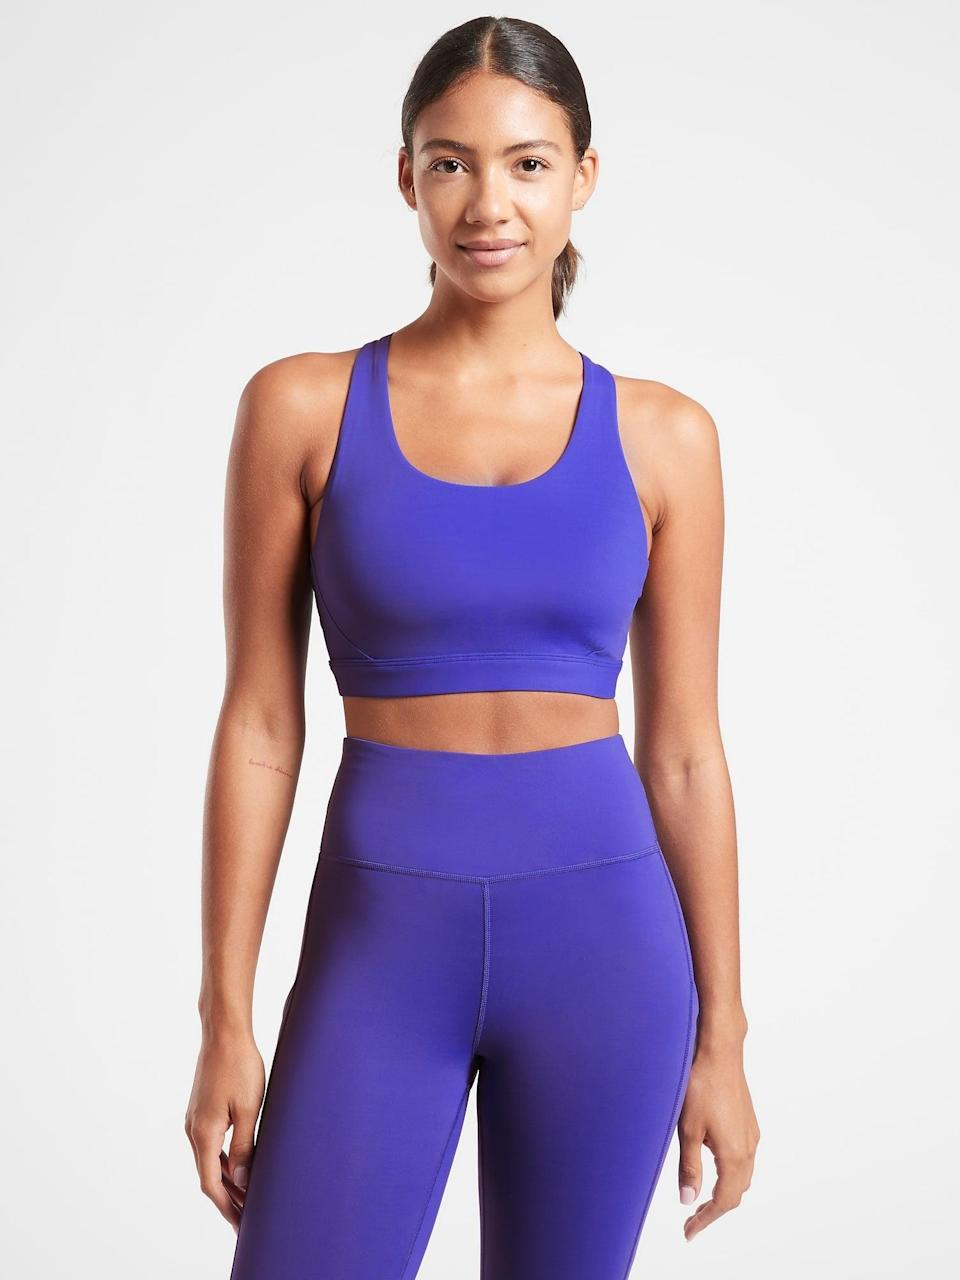 <p>The <span>Athleta Ultimate Bra</span> ($49) has earned its name. If you're someone who loves higher-impact workouts, this is for you. It's made of supportive compression fabric that will keep you held in through jumps, lunges, and squats.</p>